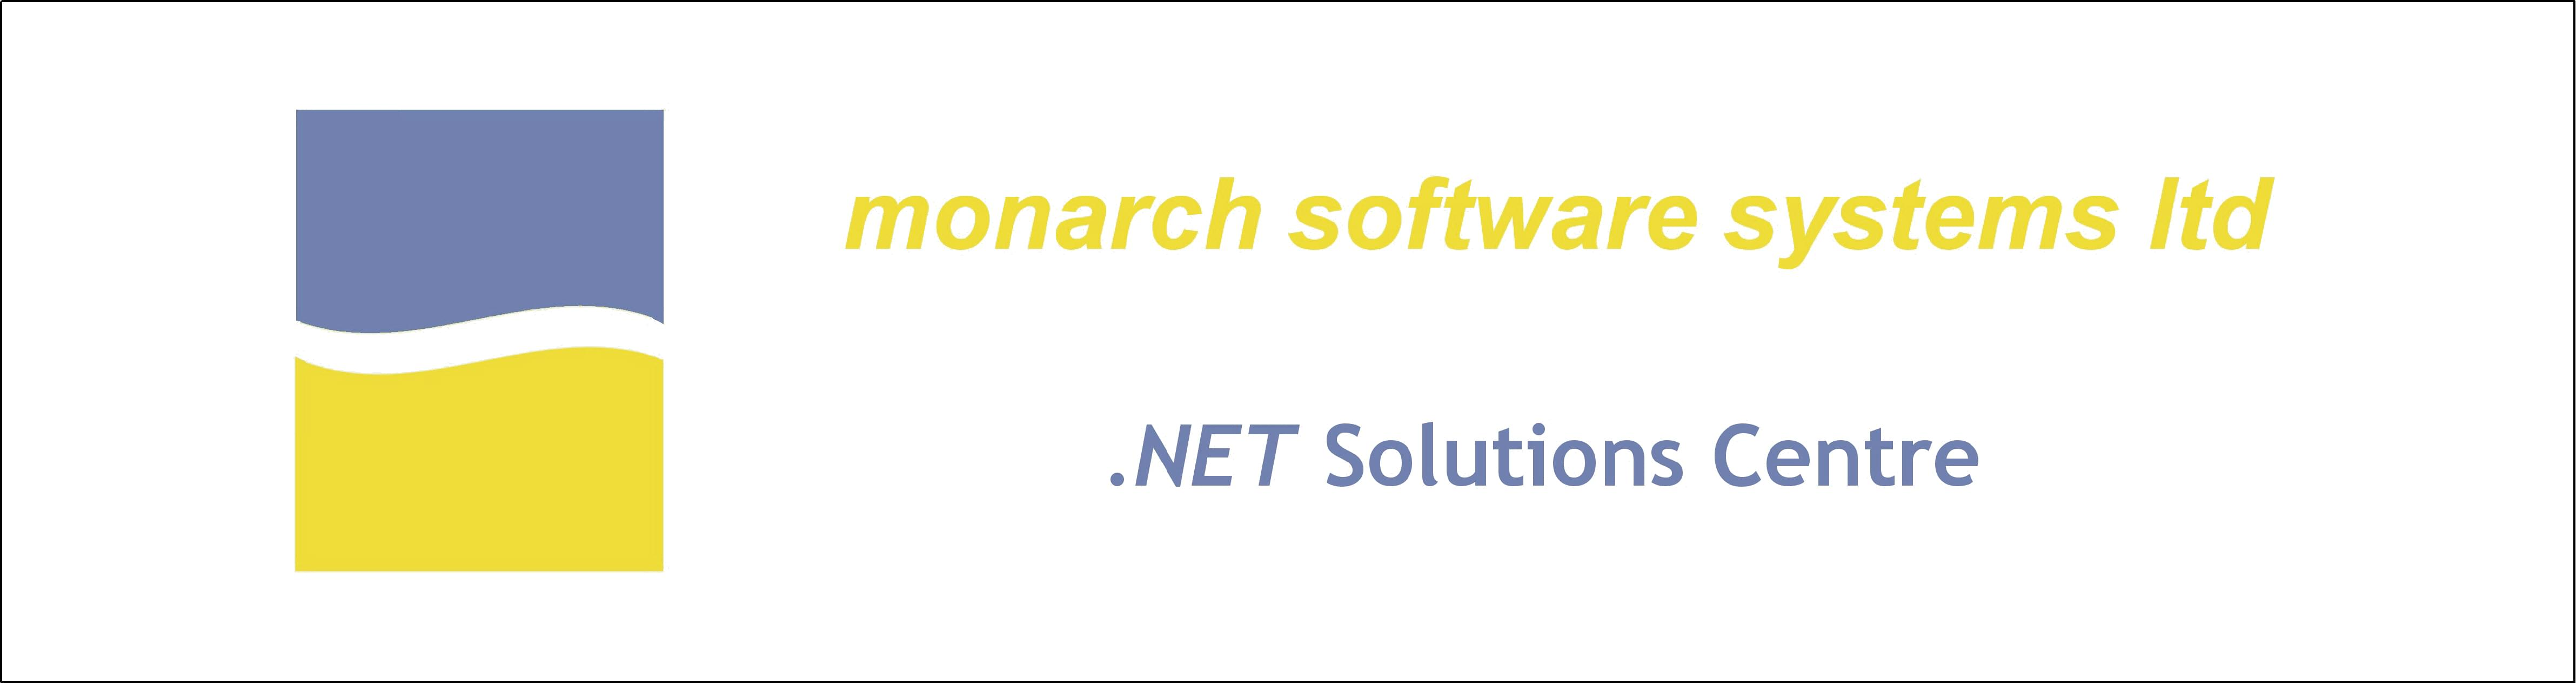 Monarch Software Systems Ltd